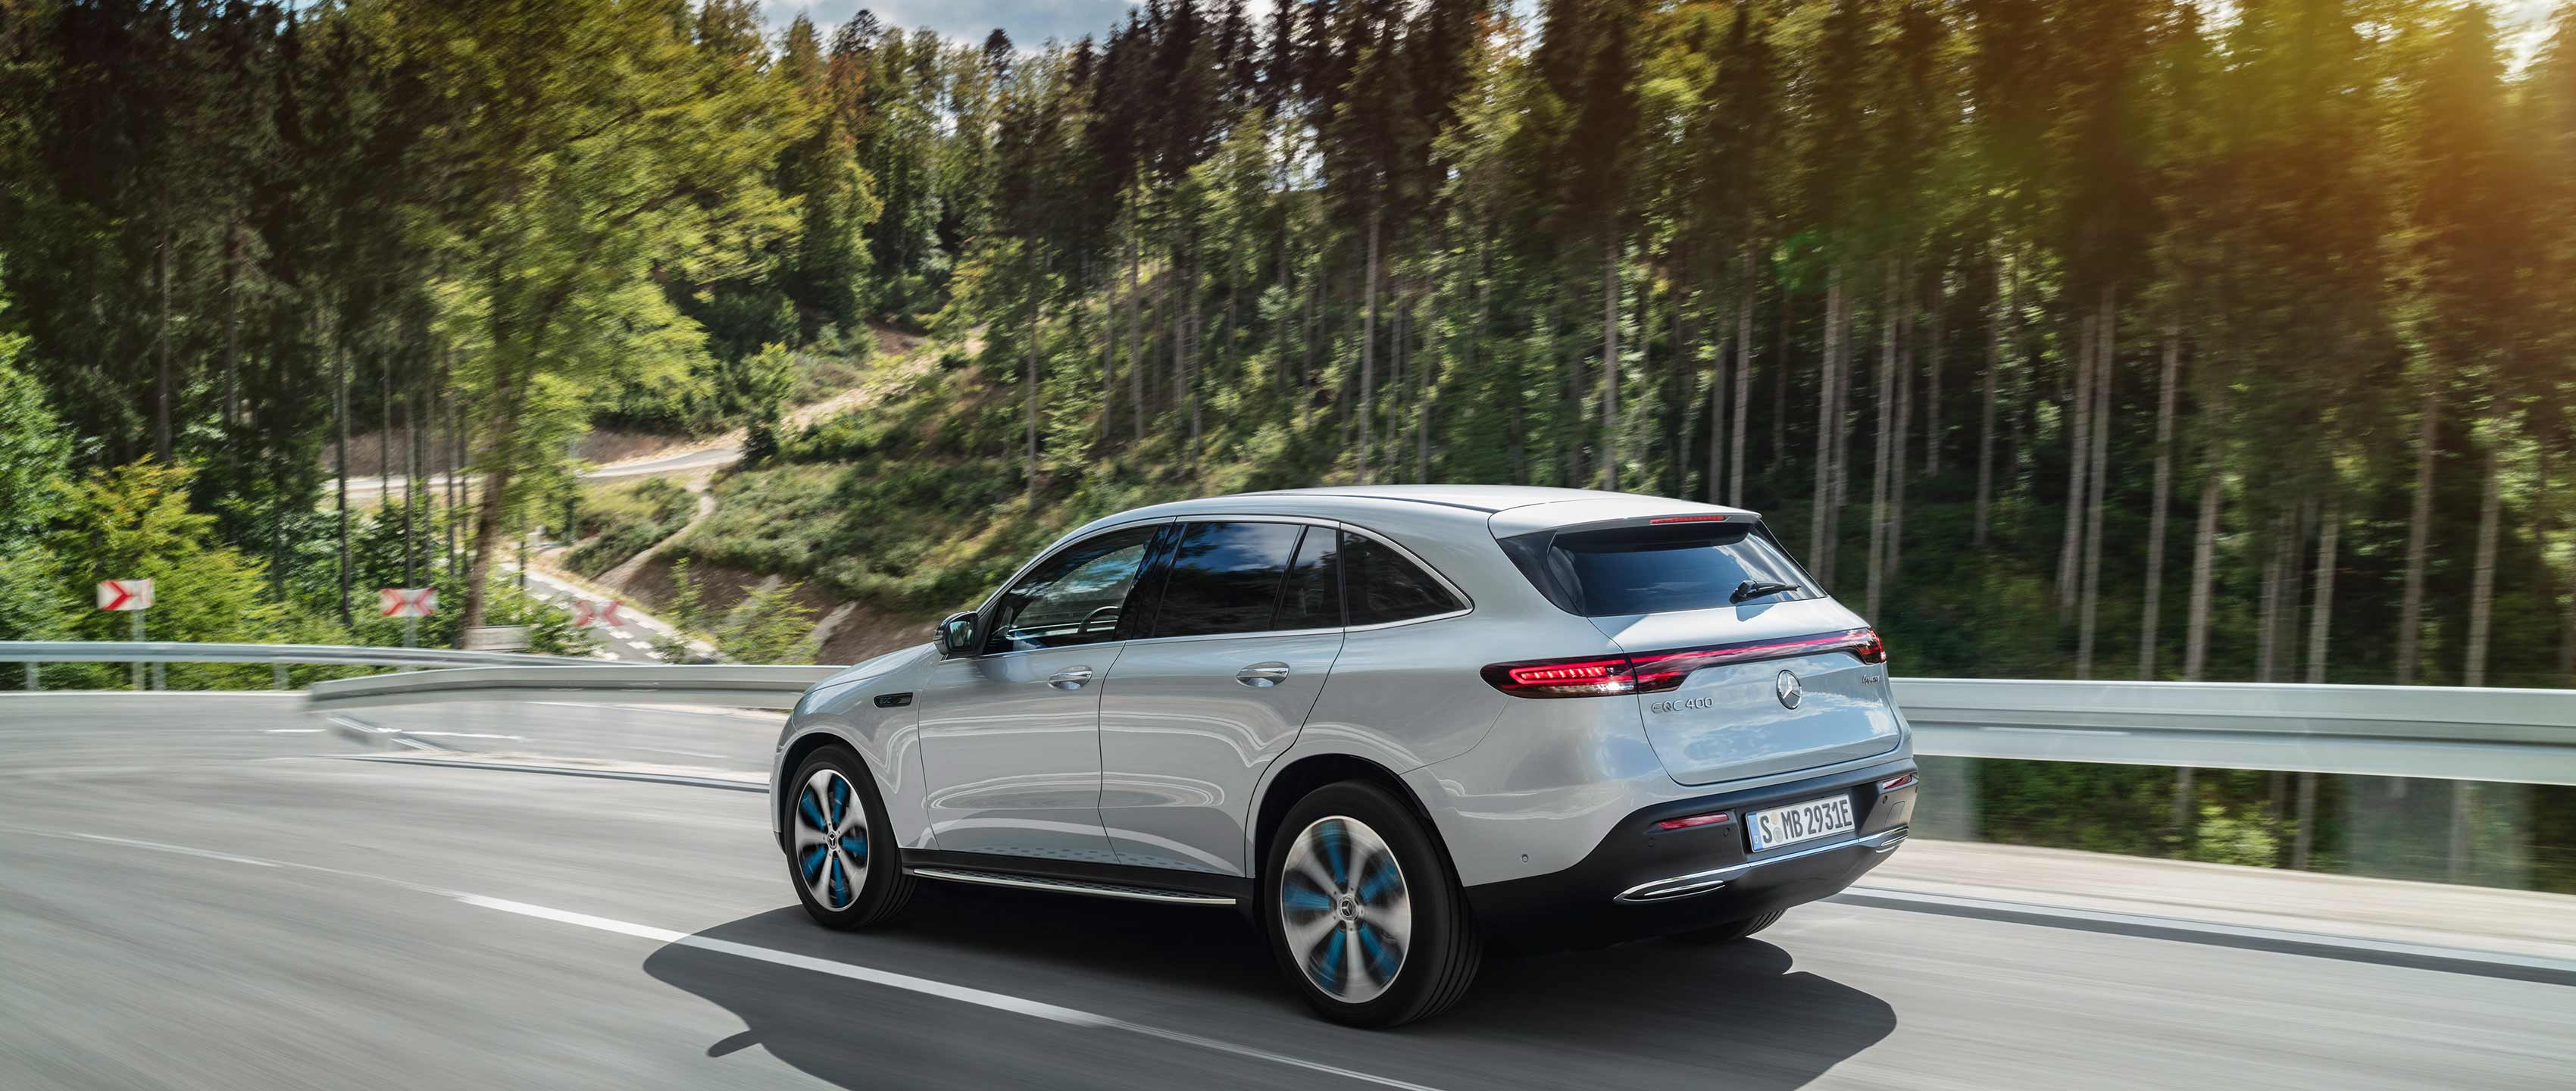 24 Gallery of Mercedes Benz Eqc 2019 Price by Mercedes Benz Eqc 2019